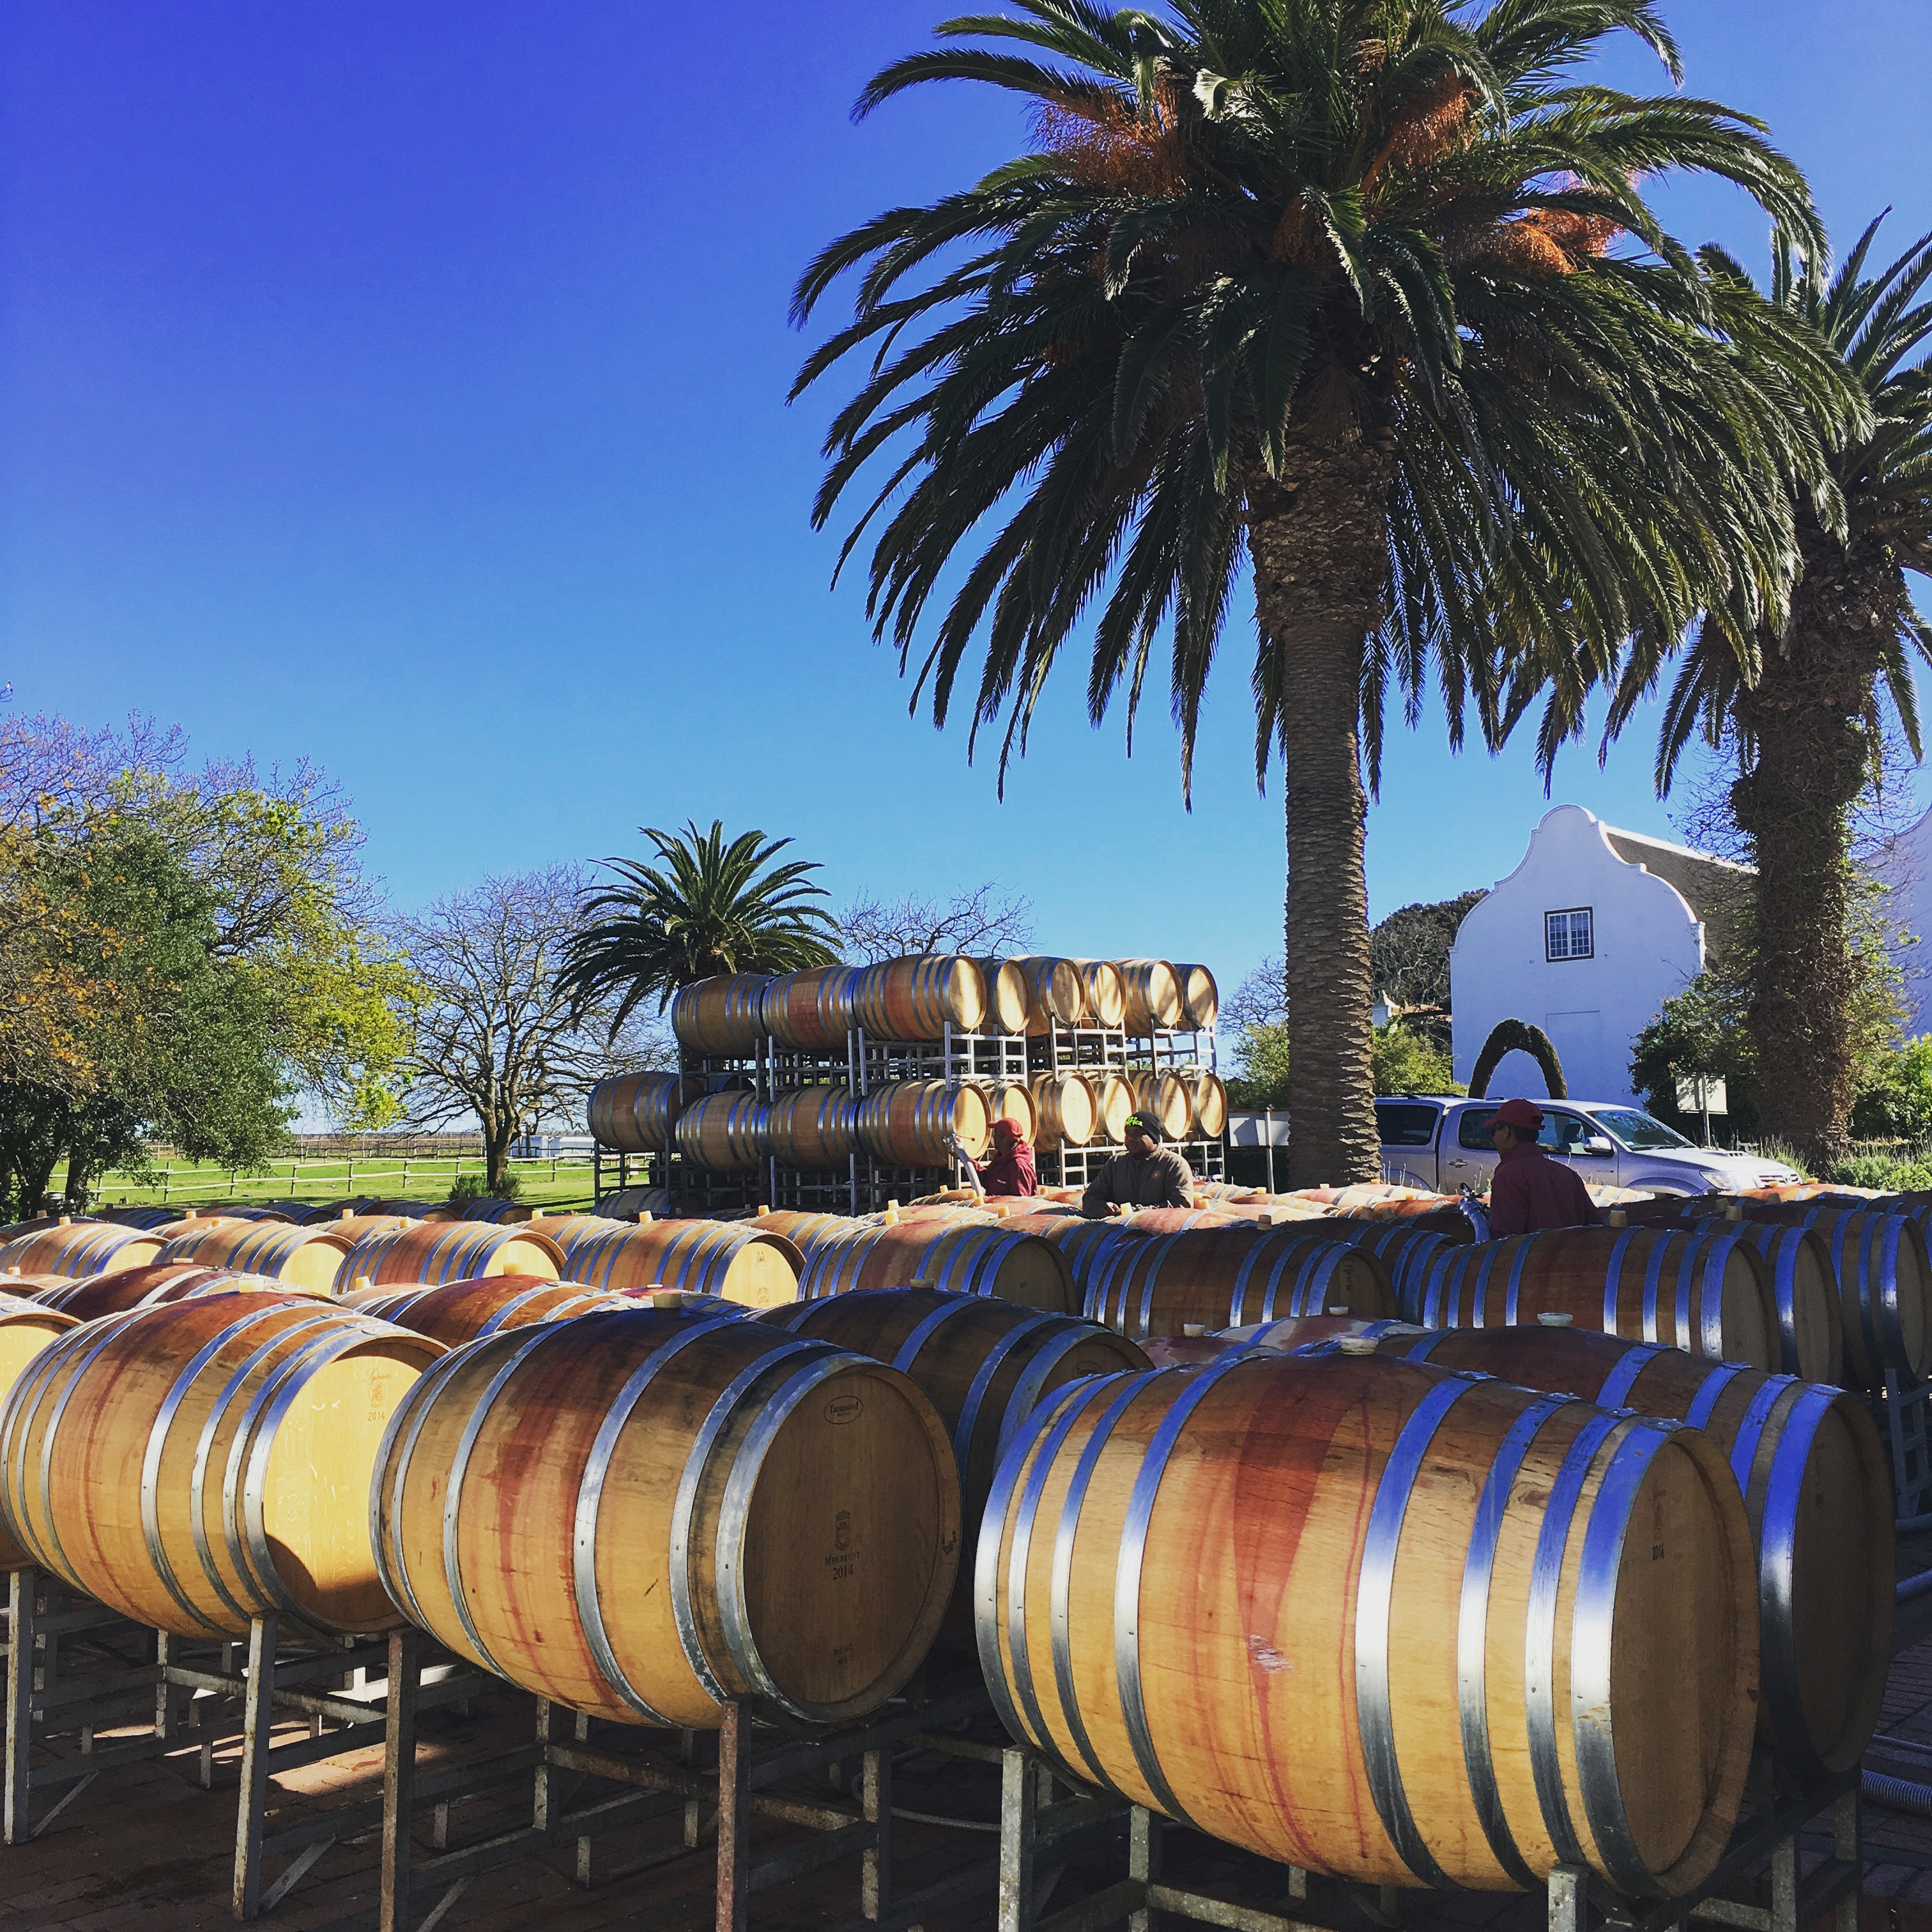 Meerlust Winery dates back to the late 1600's